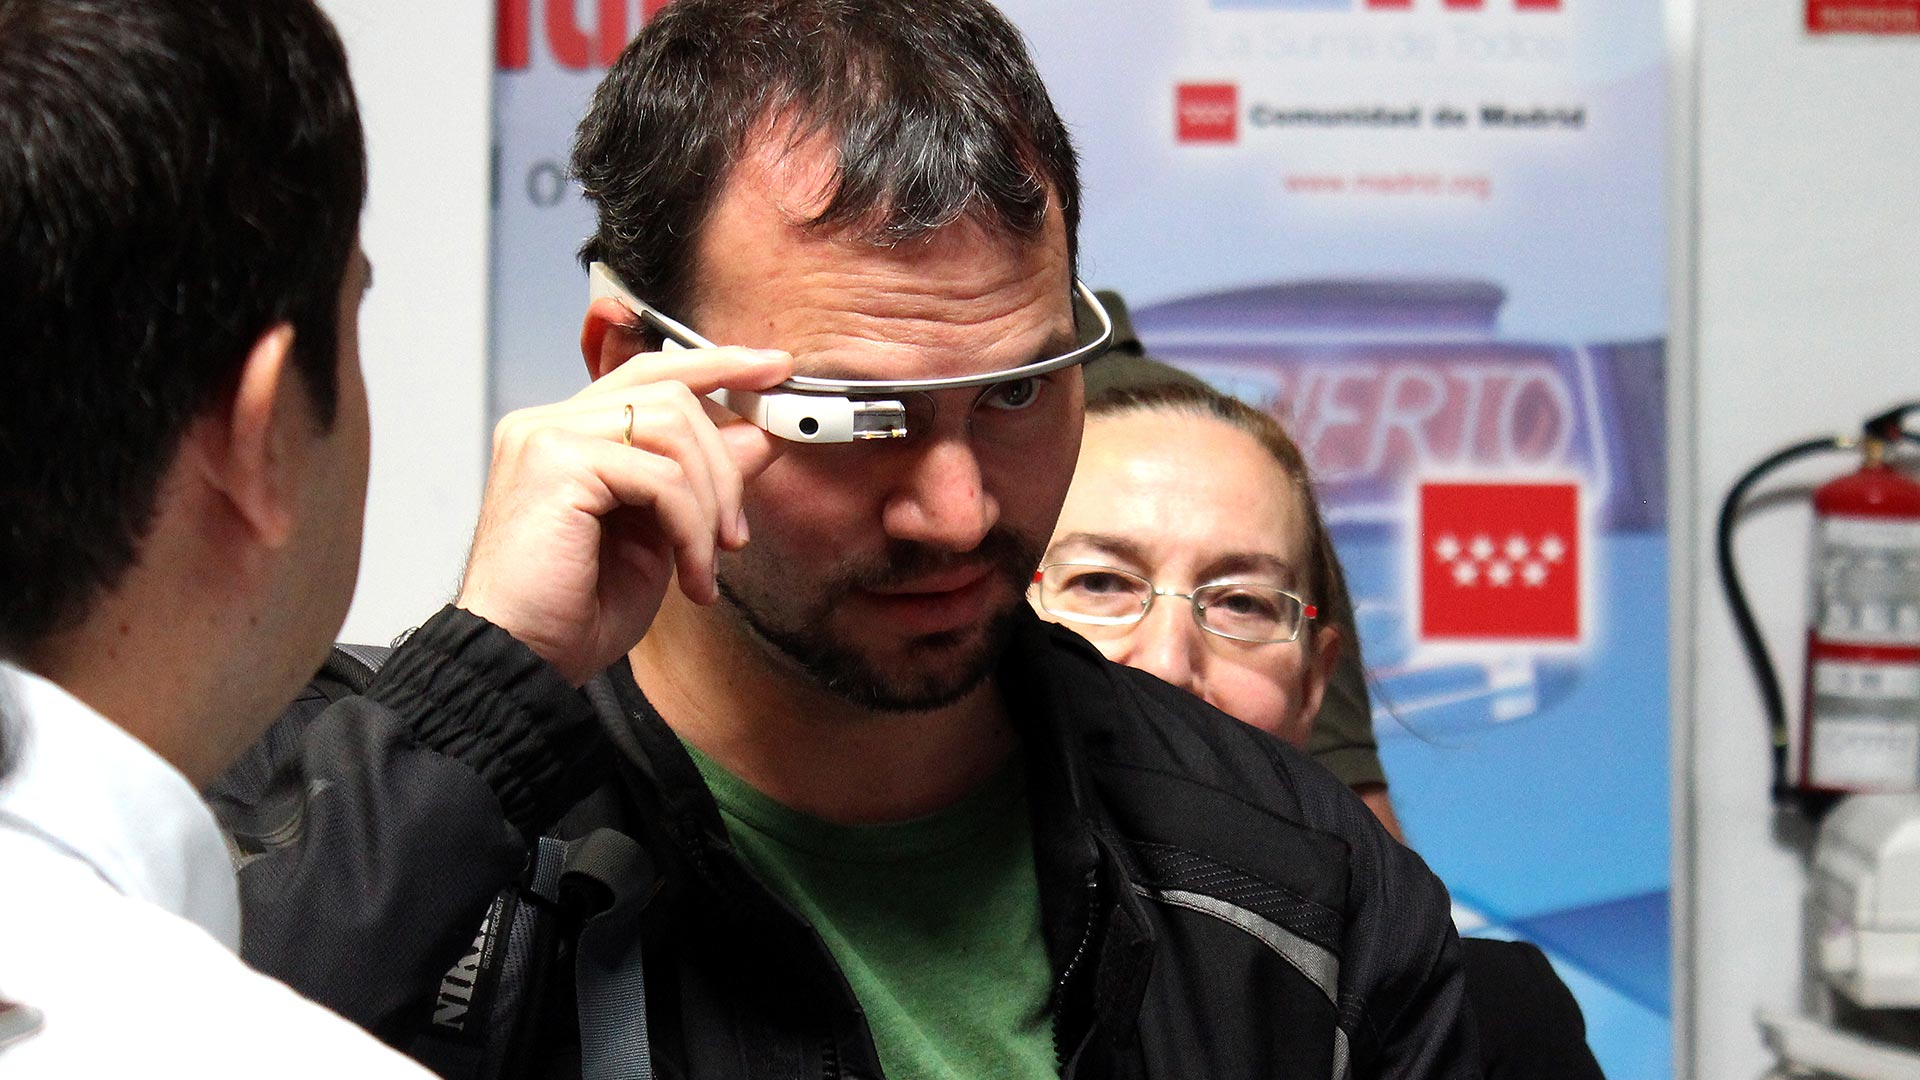 tpnet-eventos-encuentros-profesionales-iot-google-glasses-tester-2